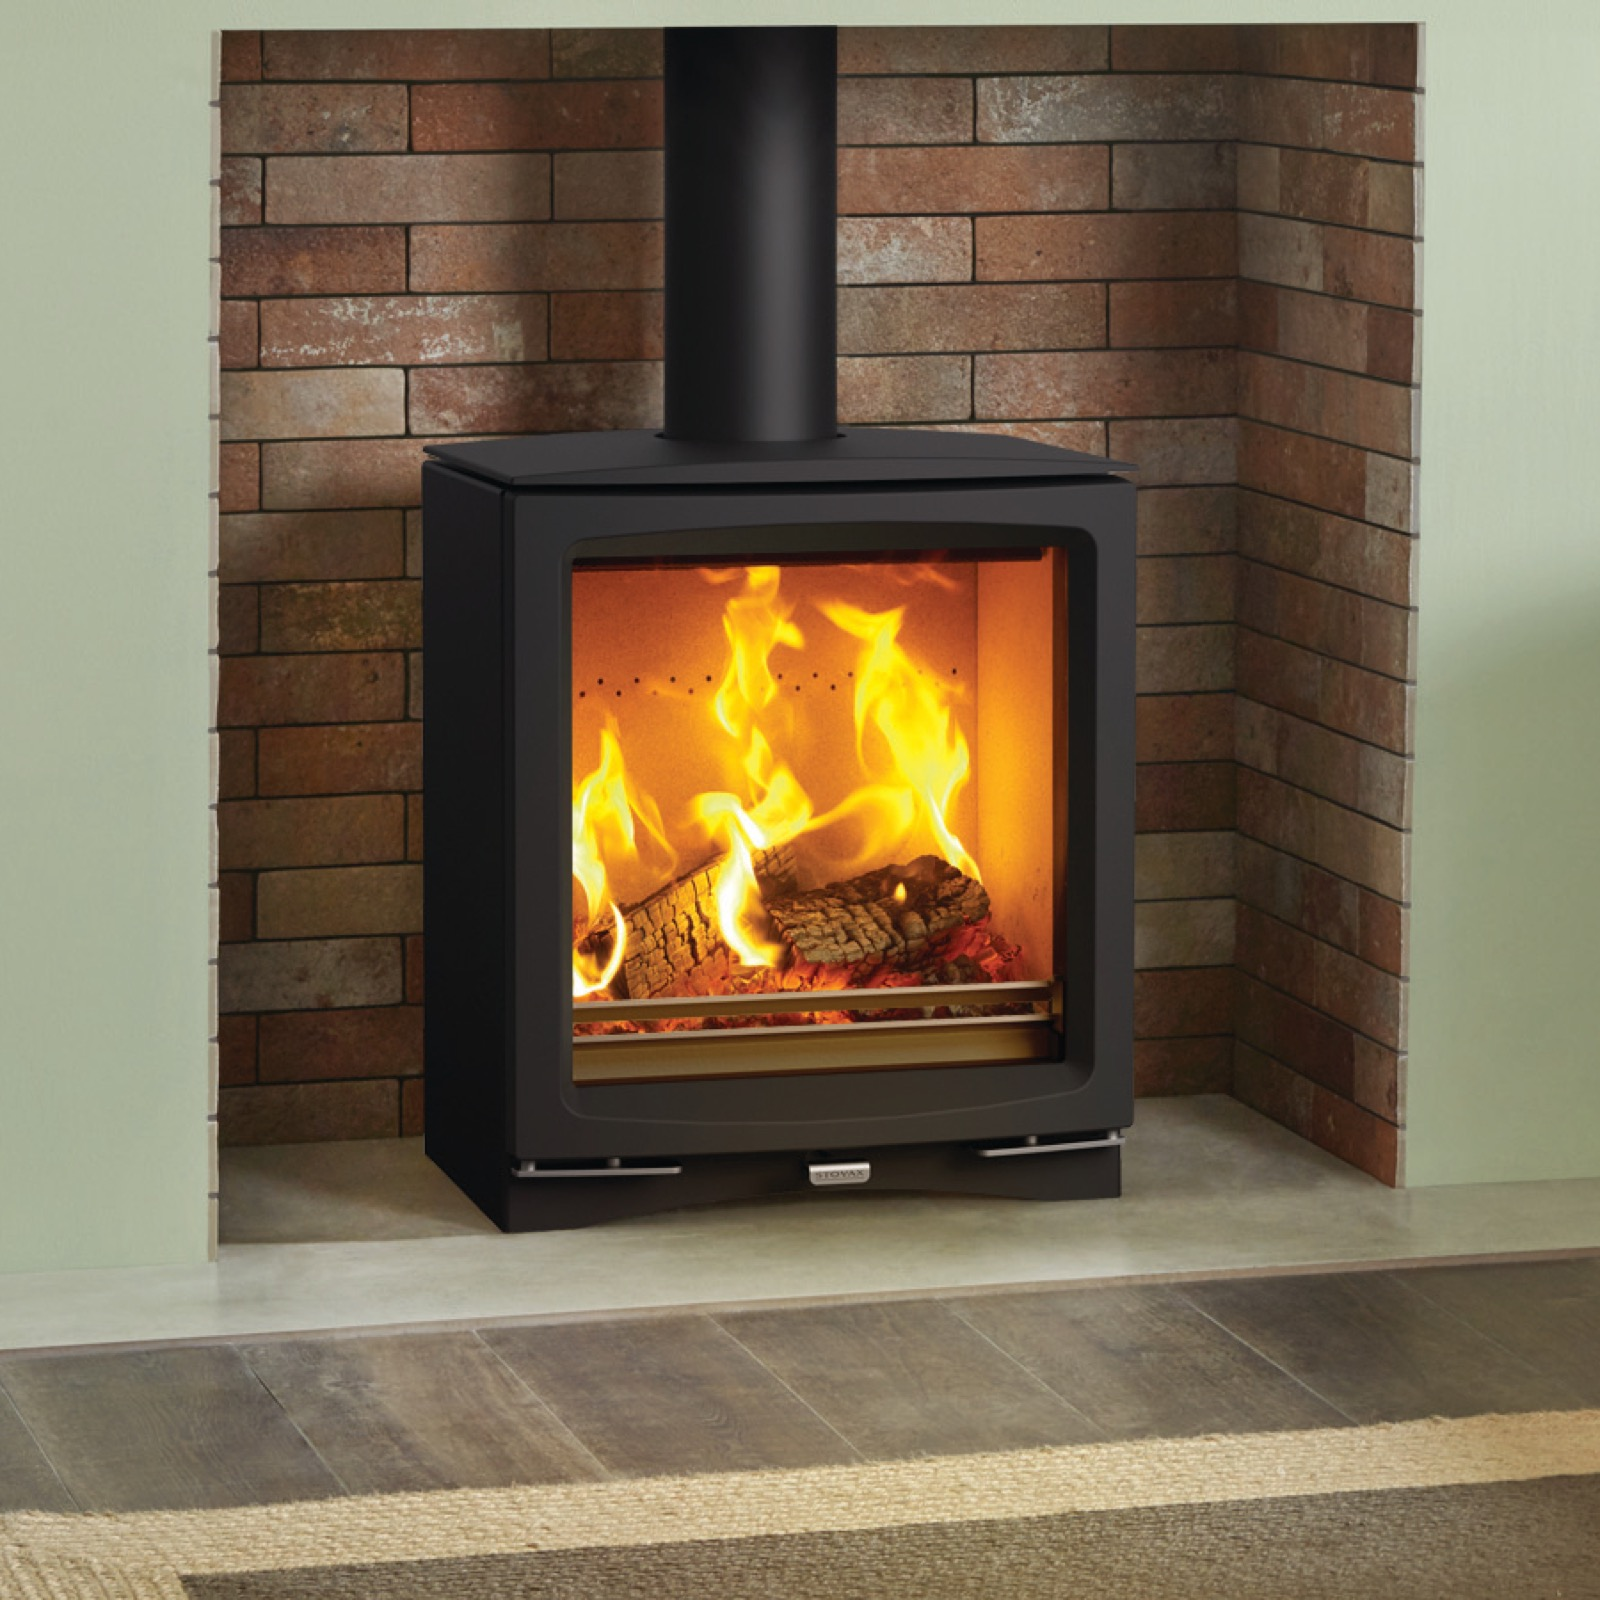 Stovax Vogue Medium Wood Burning Eco Stove With Cast Iron Top Plate